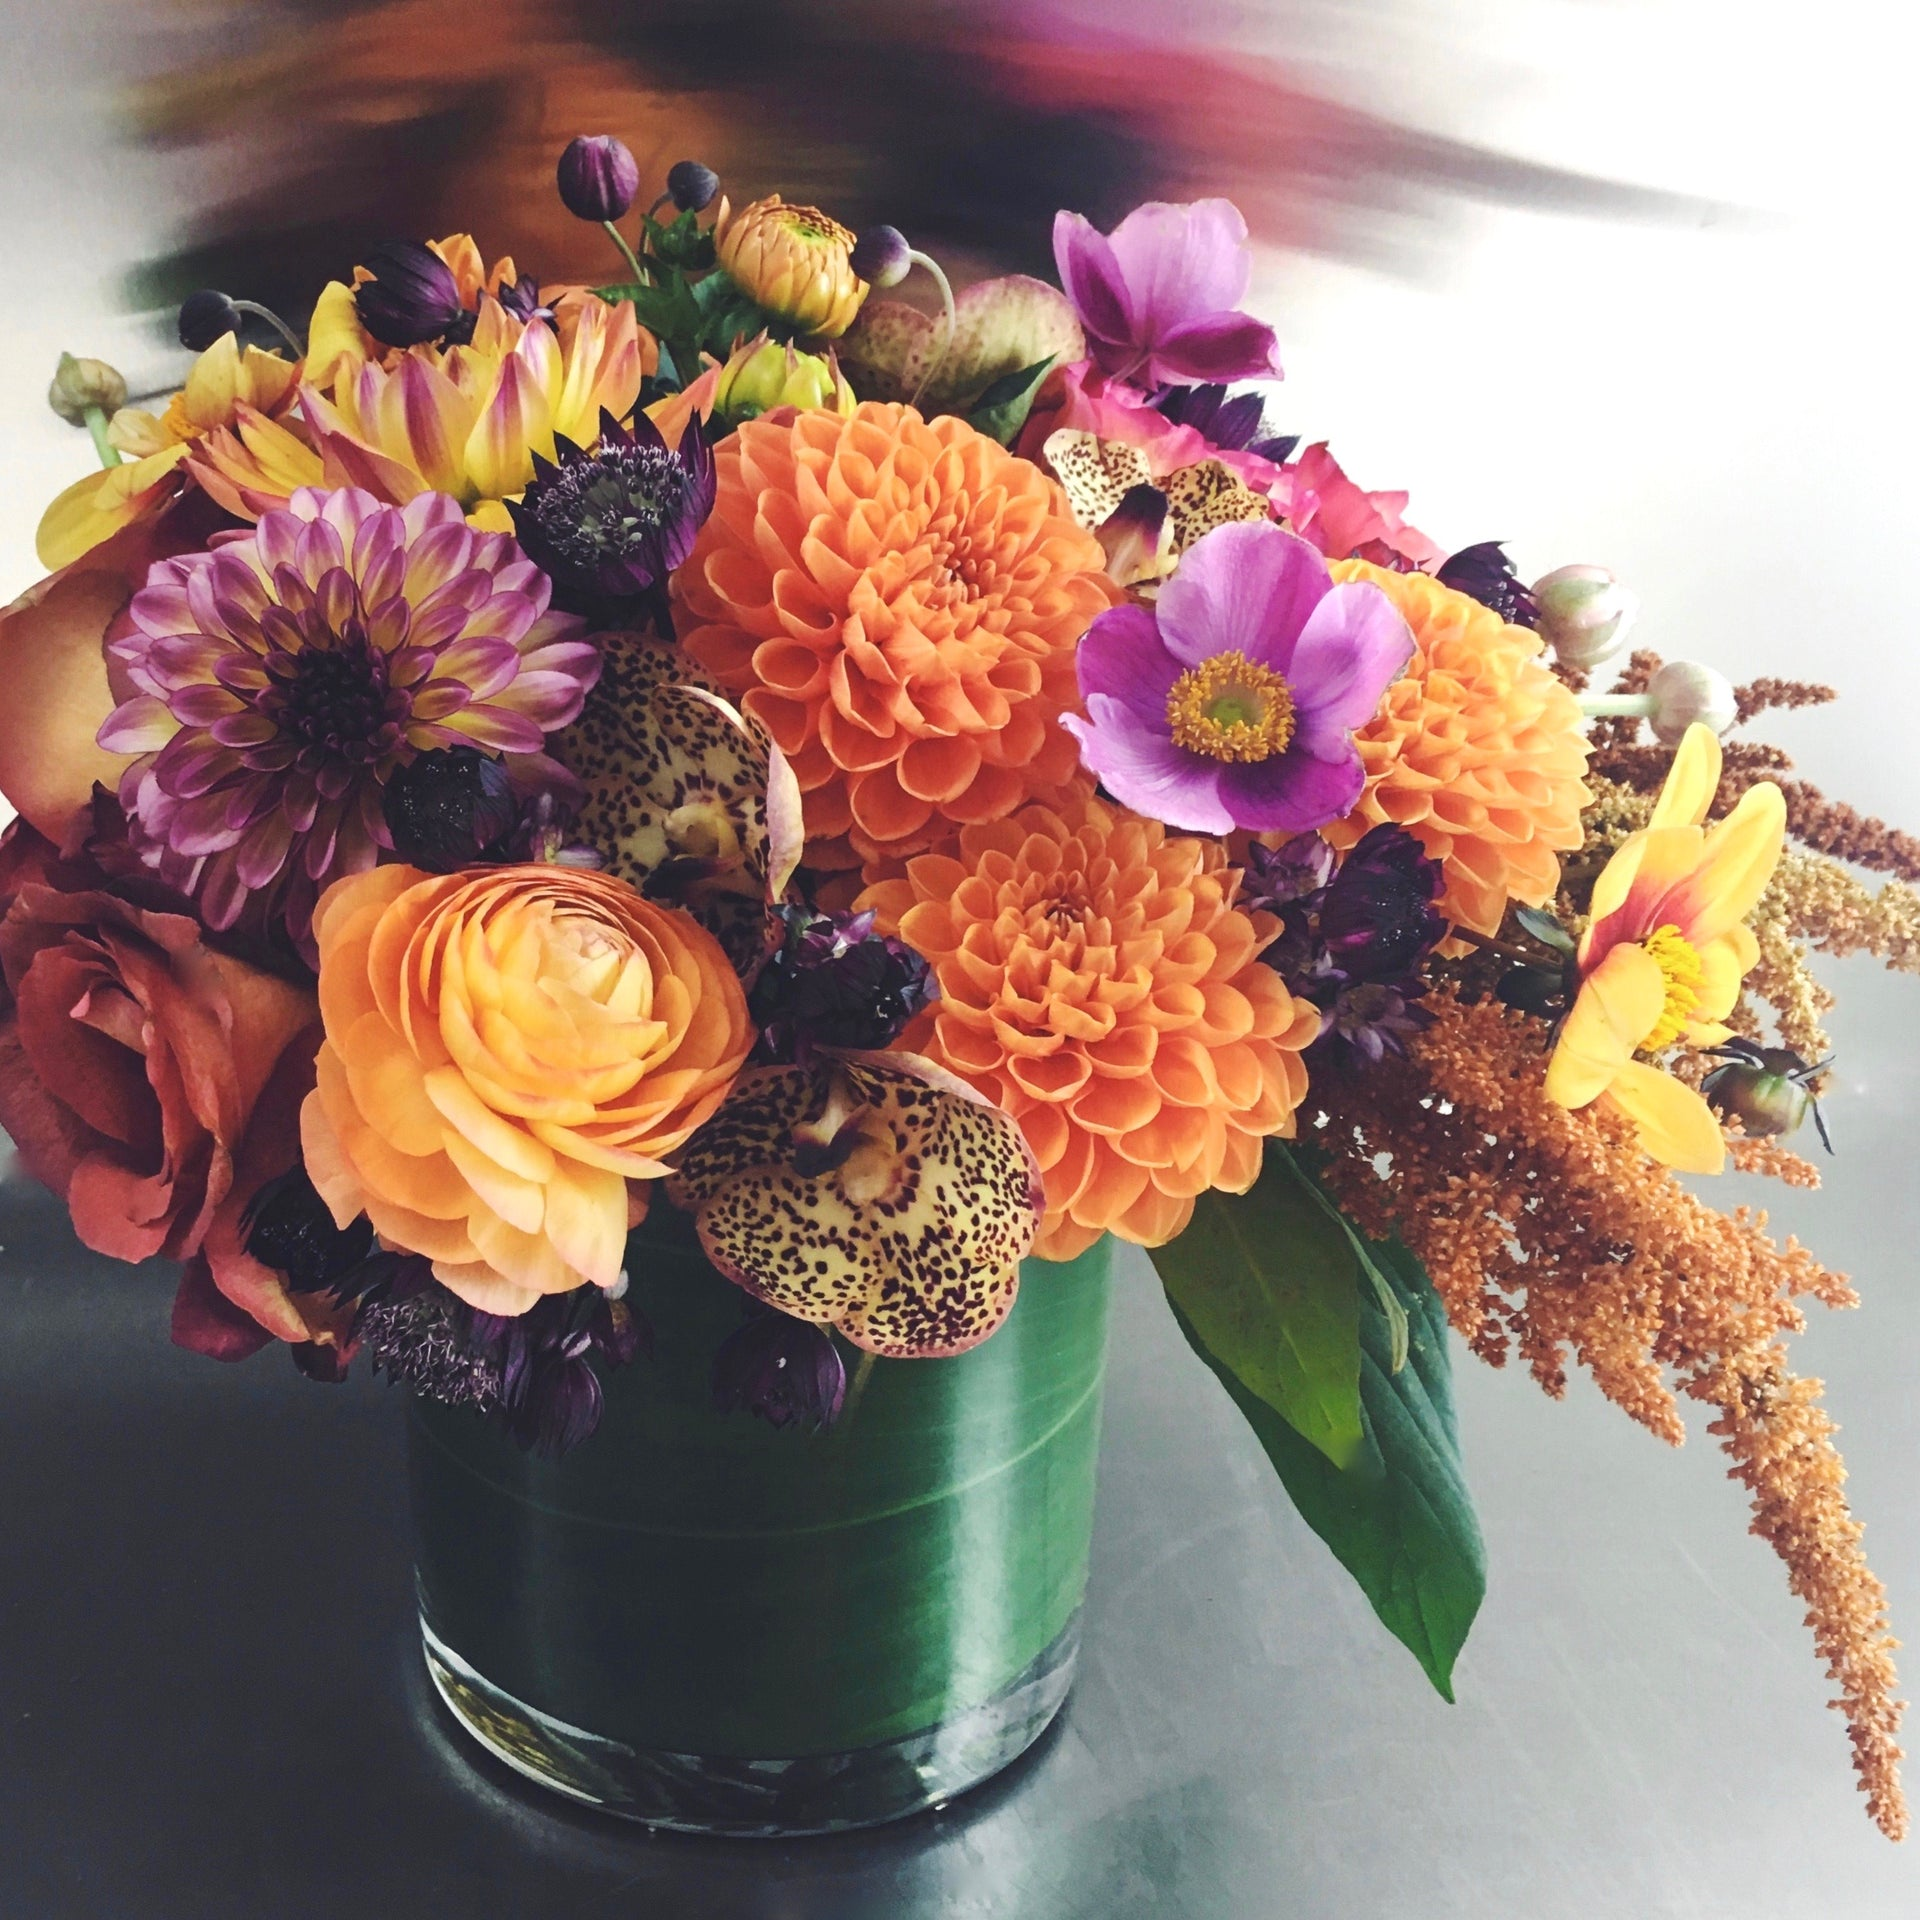 Fall arrangement using dahlias, ranunculus, and amaranthus in a low glass vase.